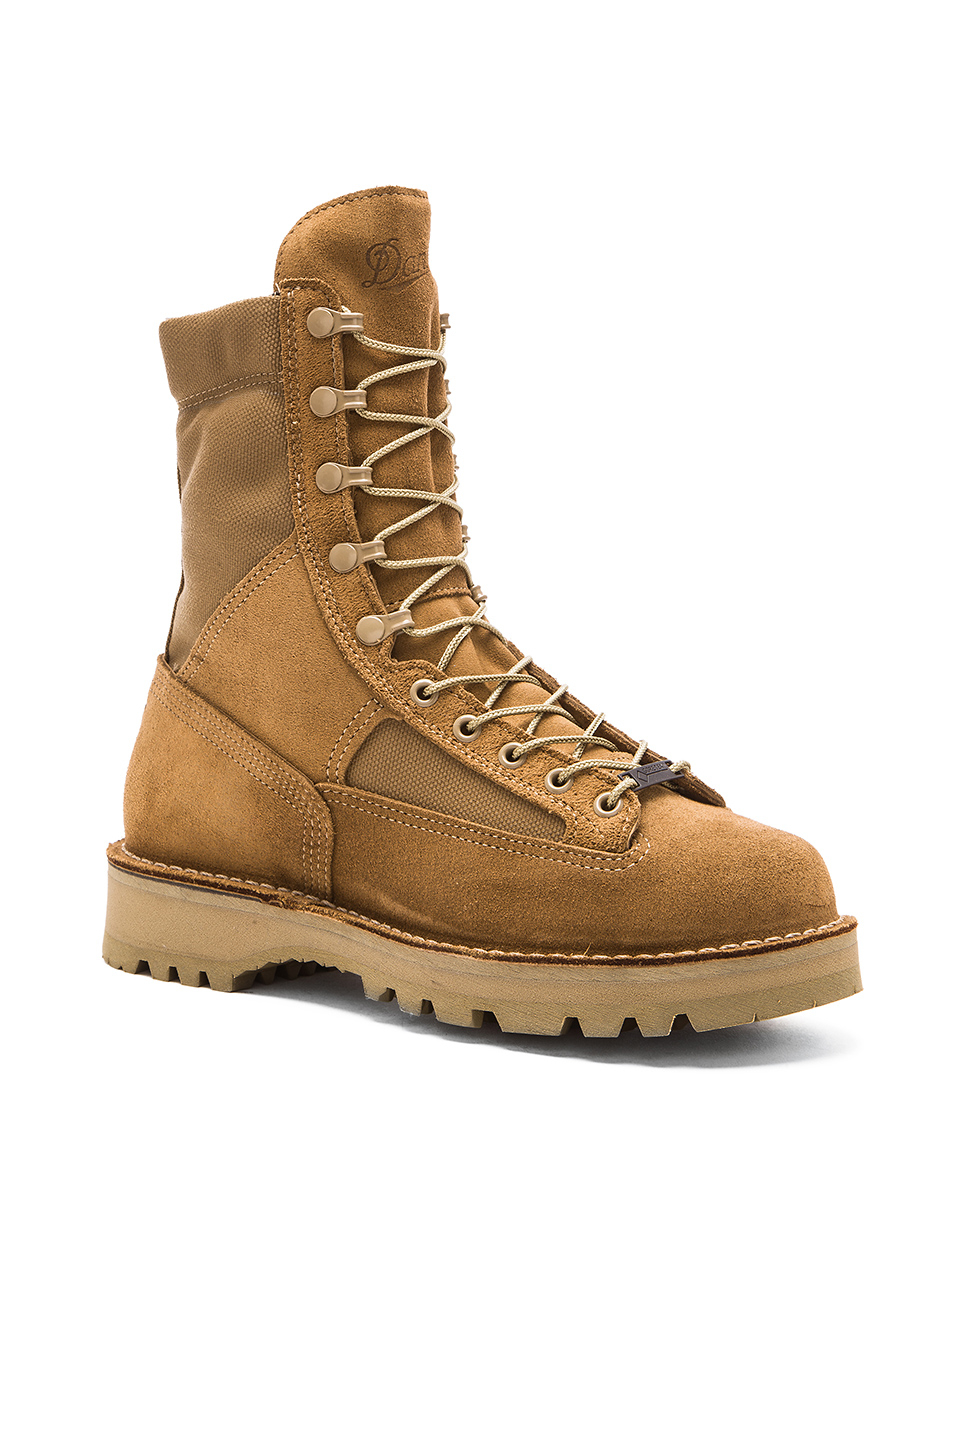 Danner Marine Boots Coltford Boots